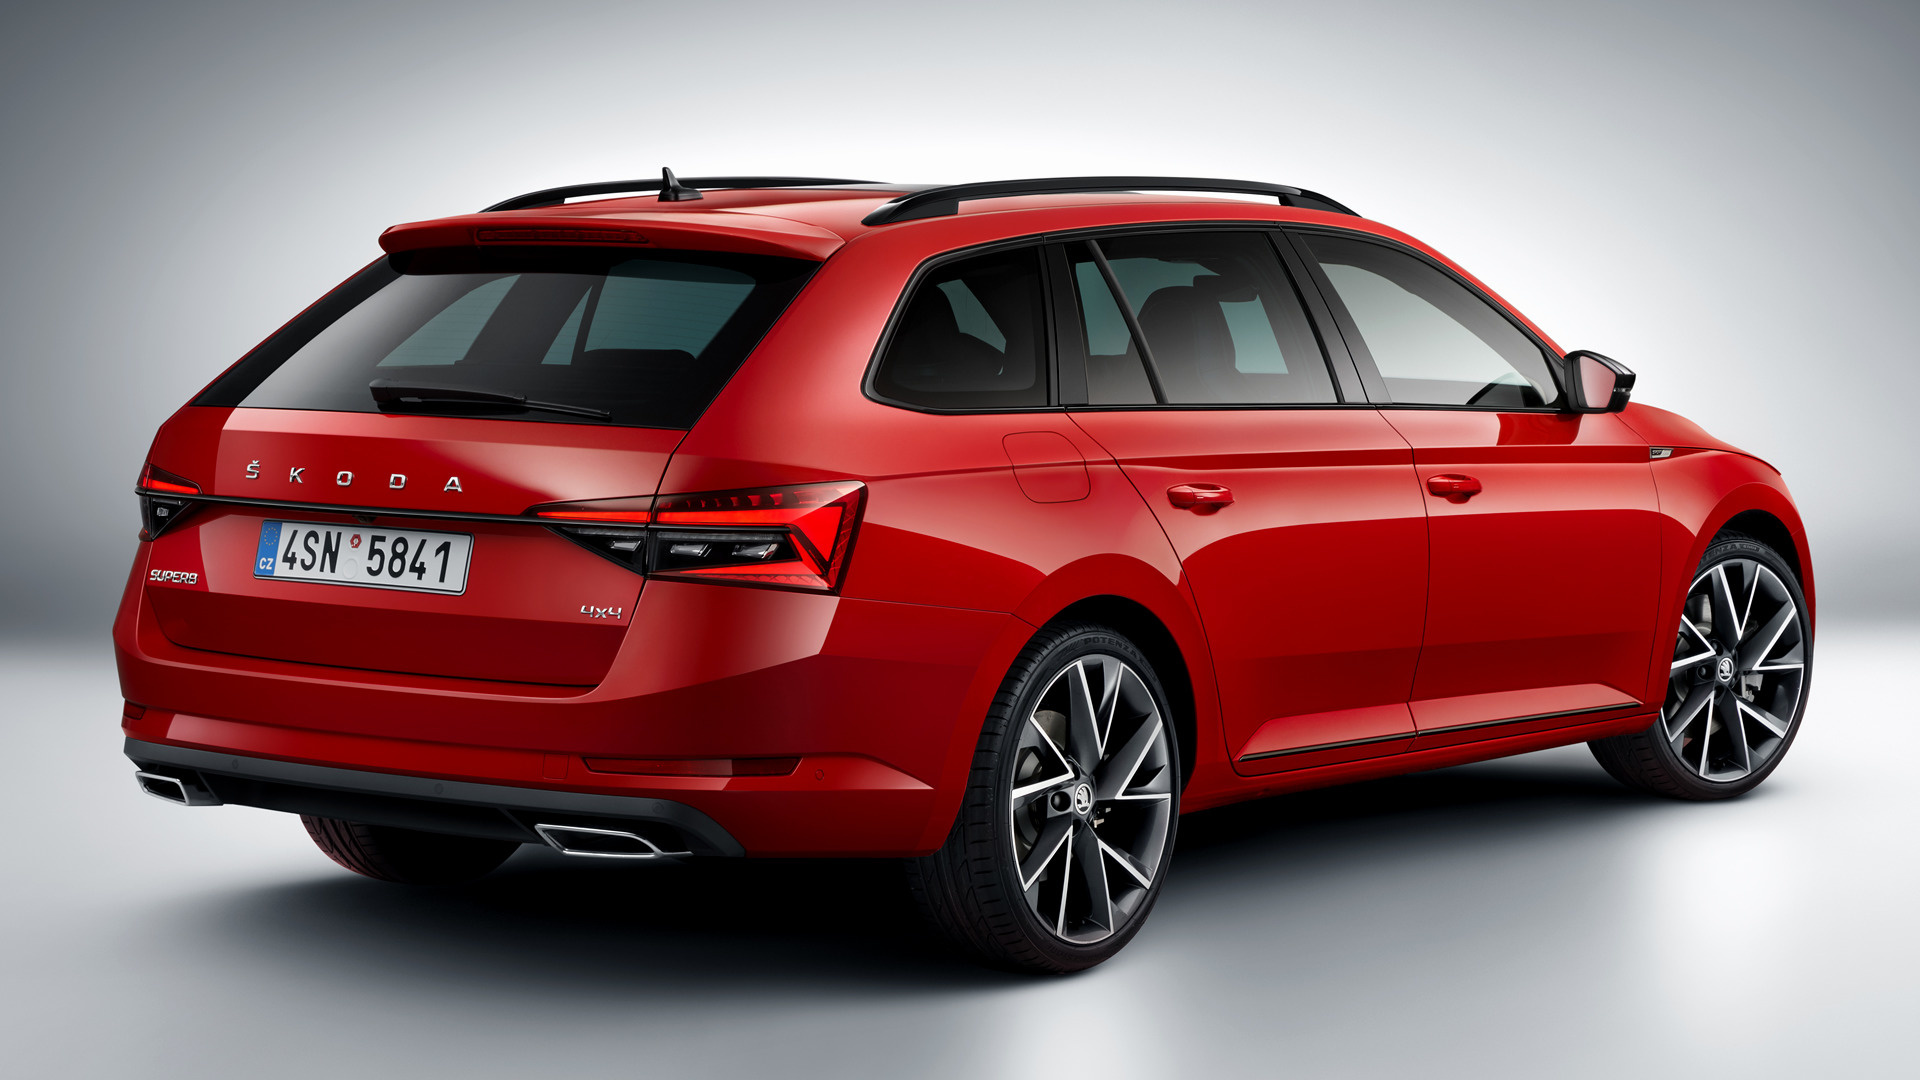 Skoda Superb Wagon >> 2019 Skoda Superb Combi SportLine - Wallpapers and HD ...